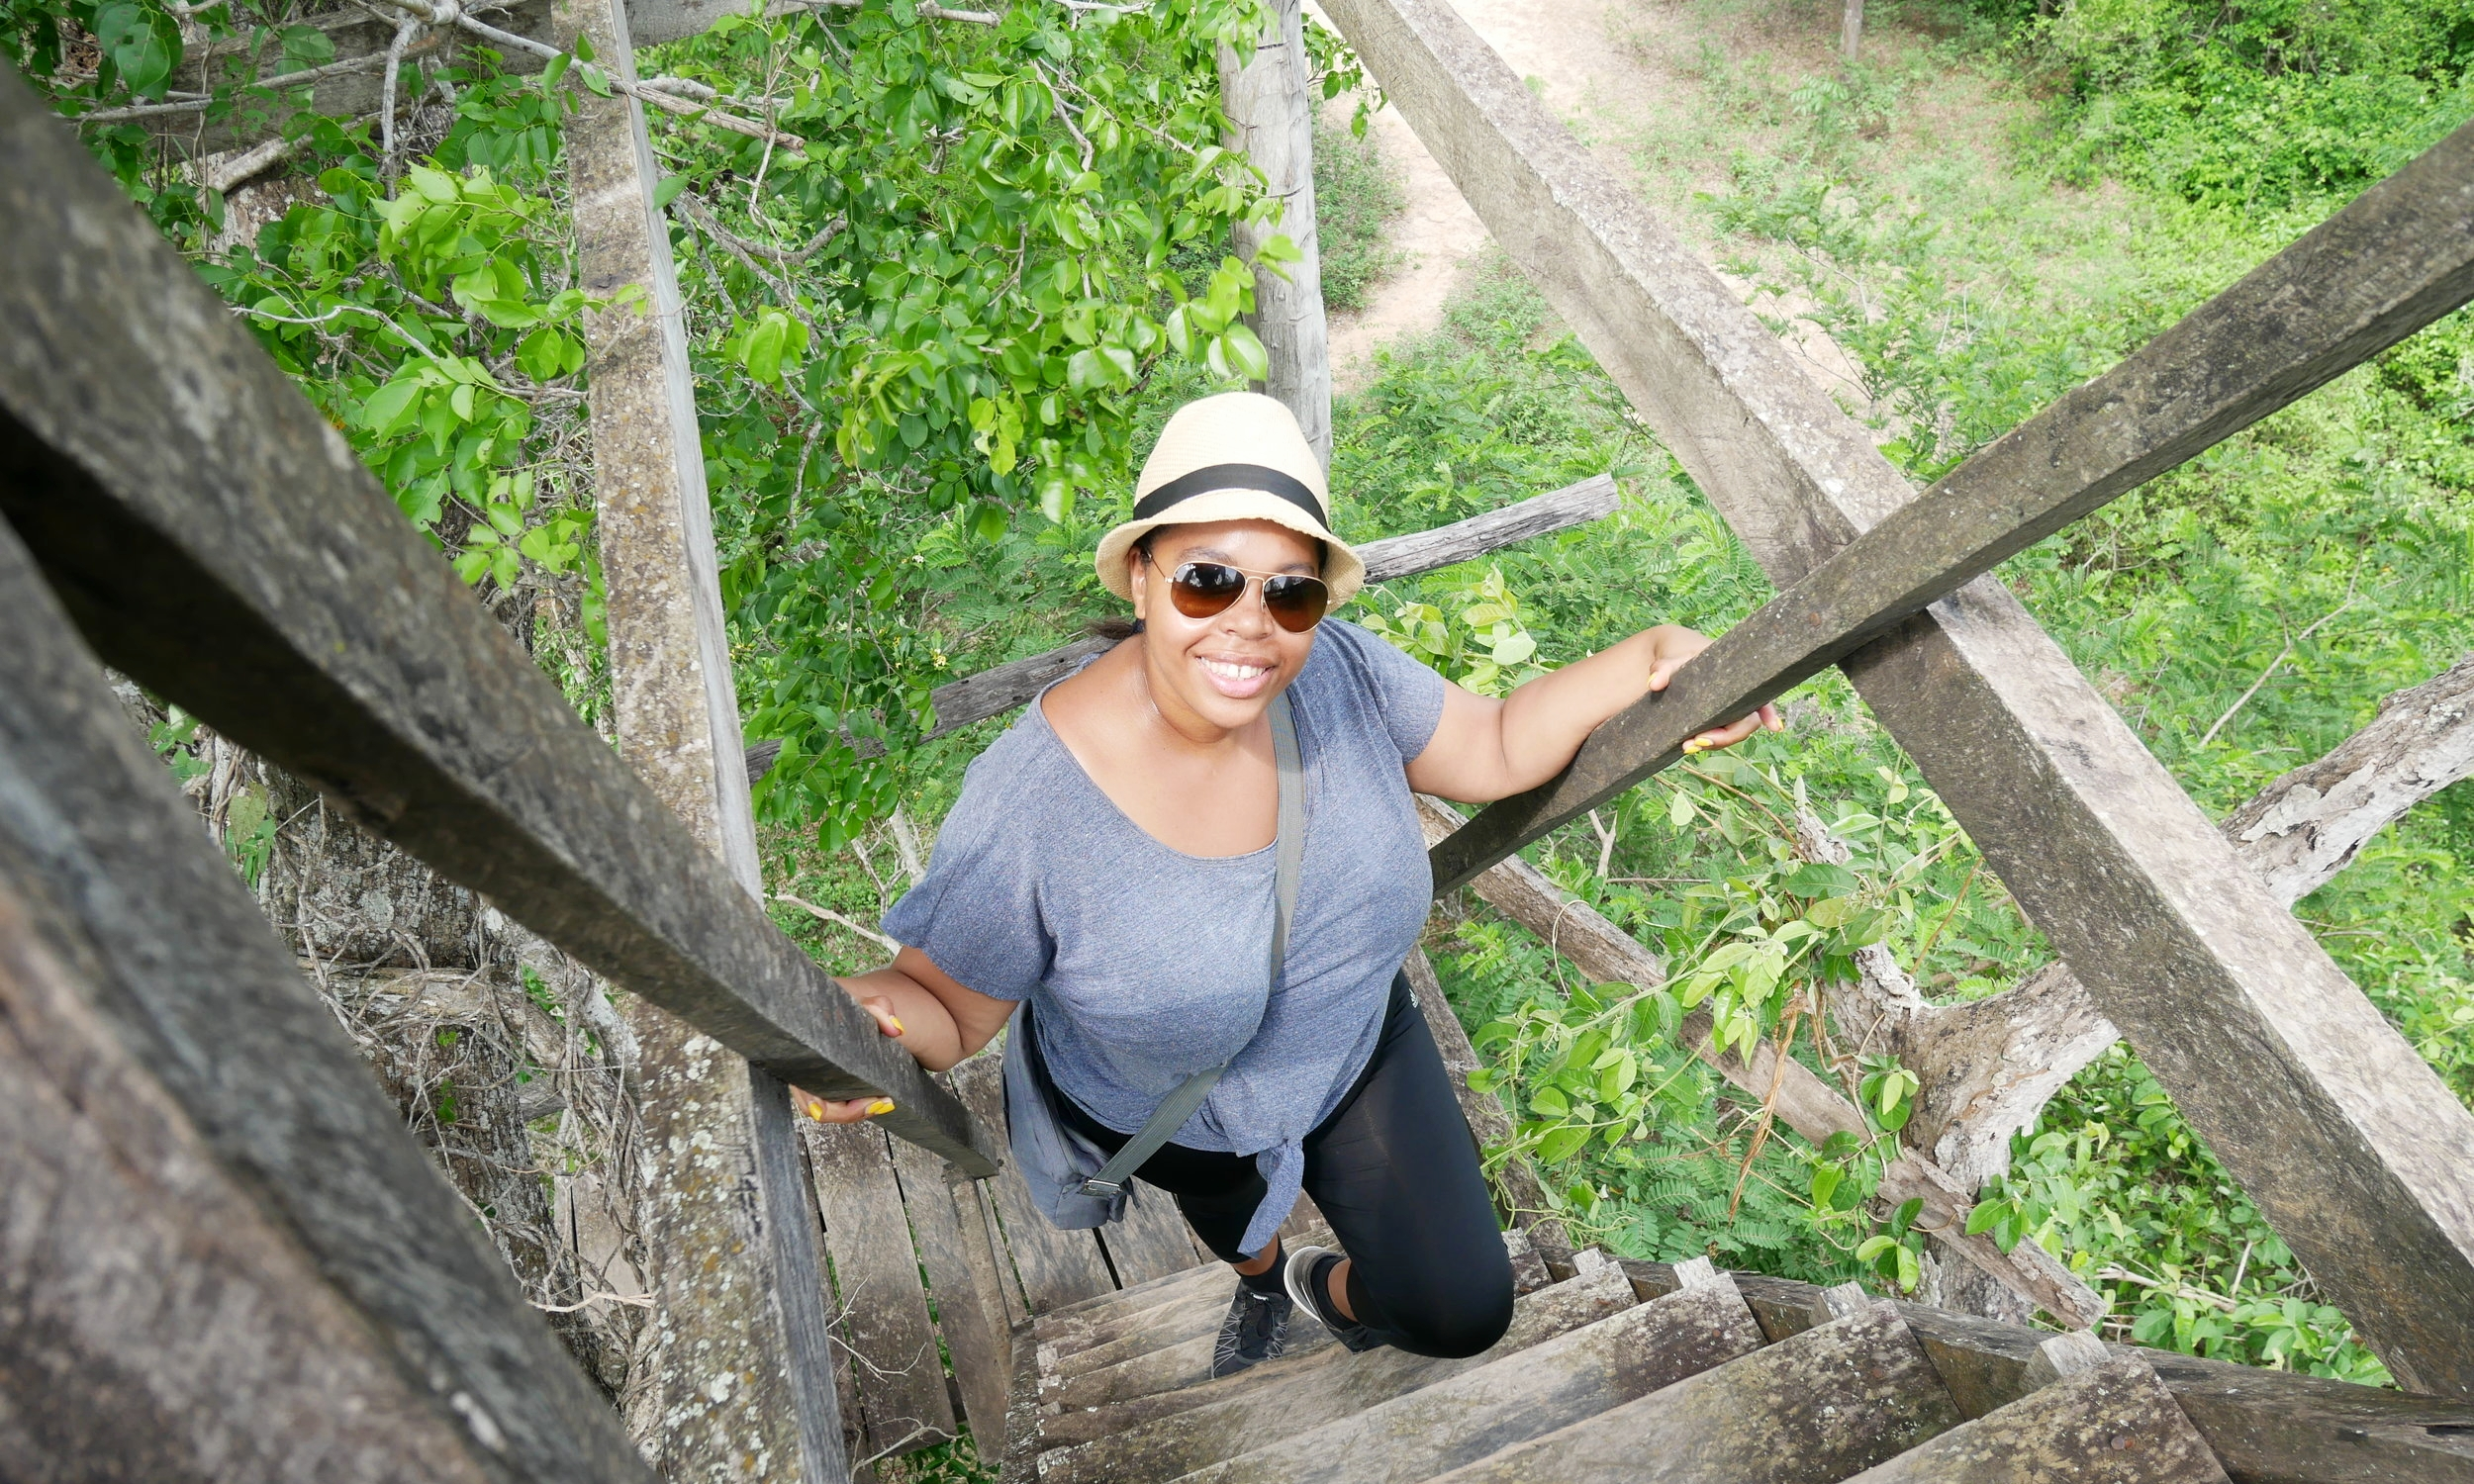 Simone making her way up the treehouse